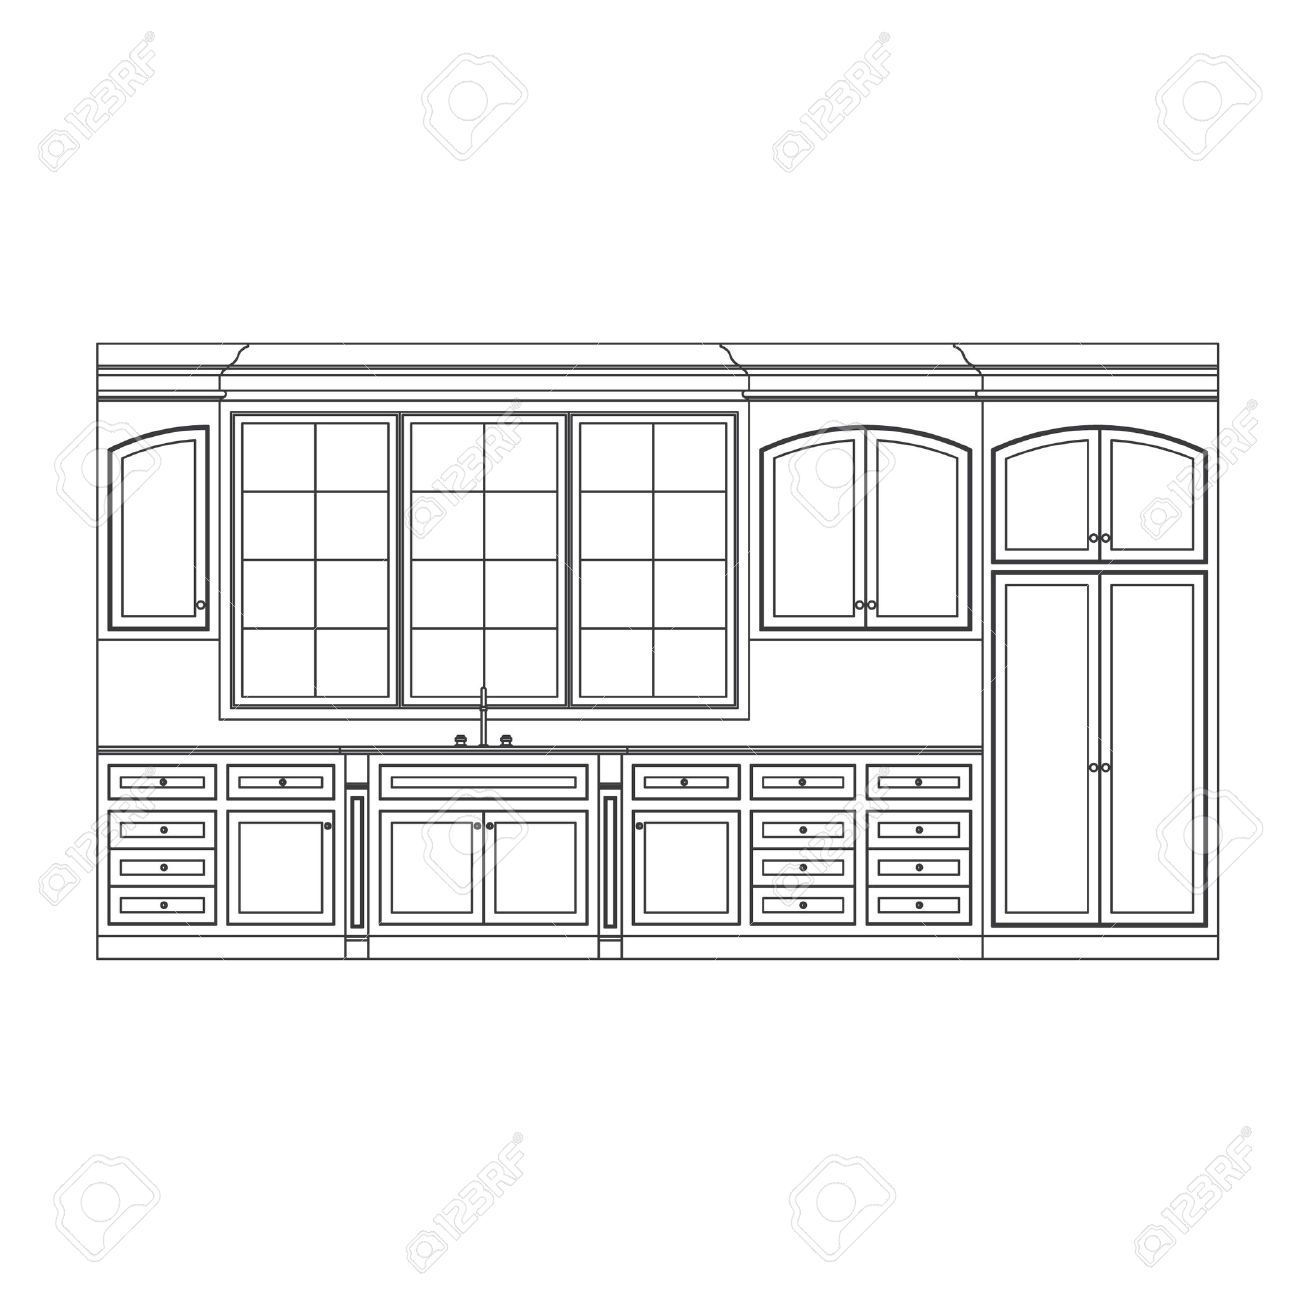 Gentil Kitchen Elevation Line Drawing, Cabinets, Drawers, Appliances Stock Vector    6959792